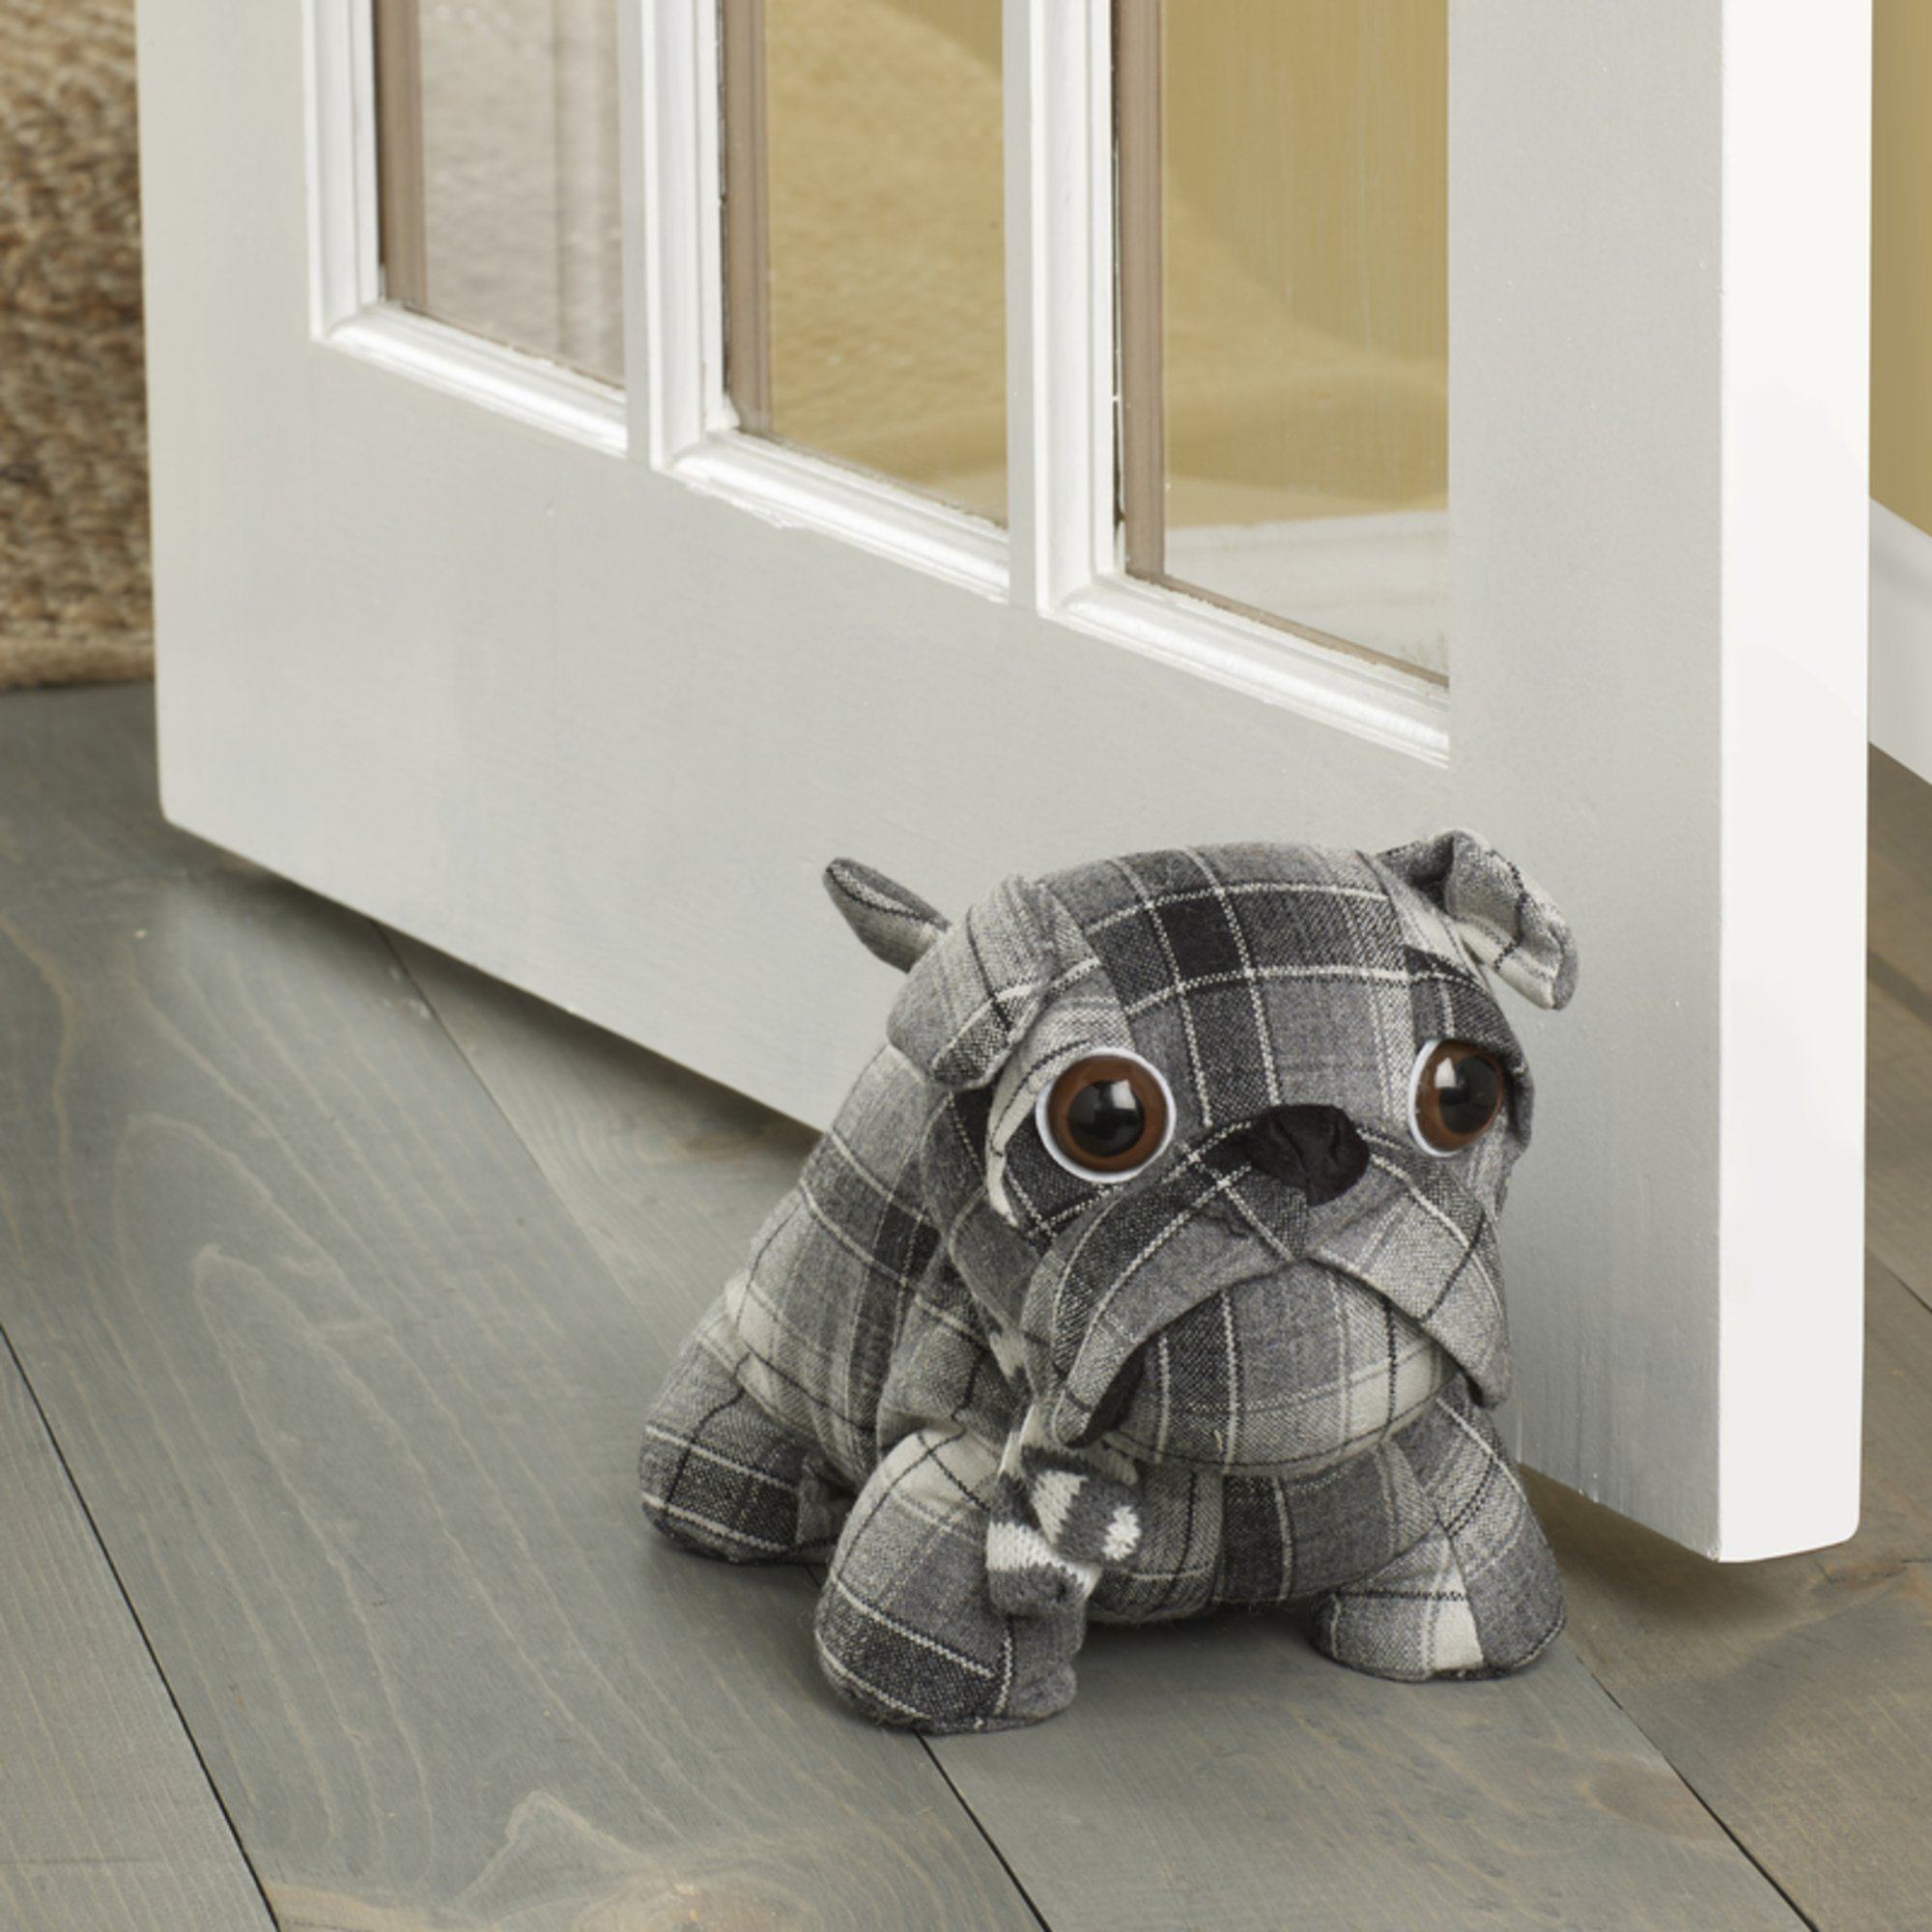 Elements Plaid Bull Dog Door Stopper, 10-Inch, Plaid Dog